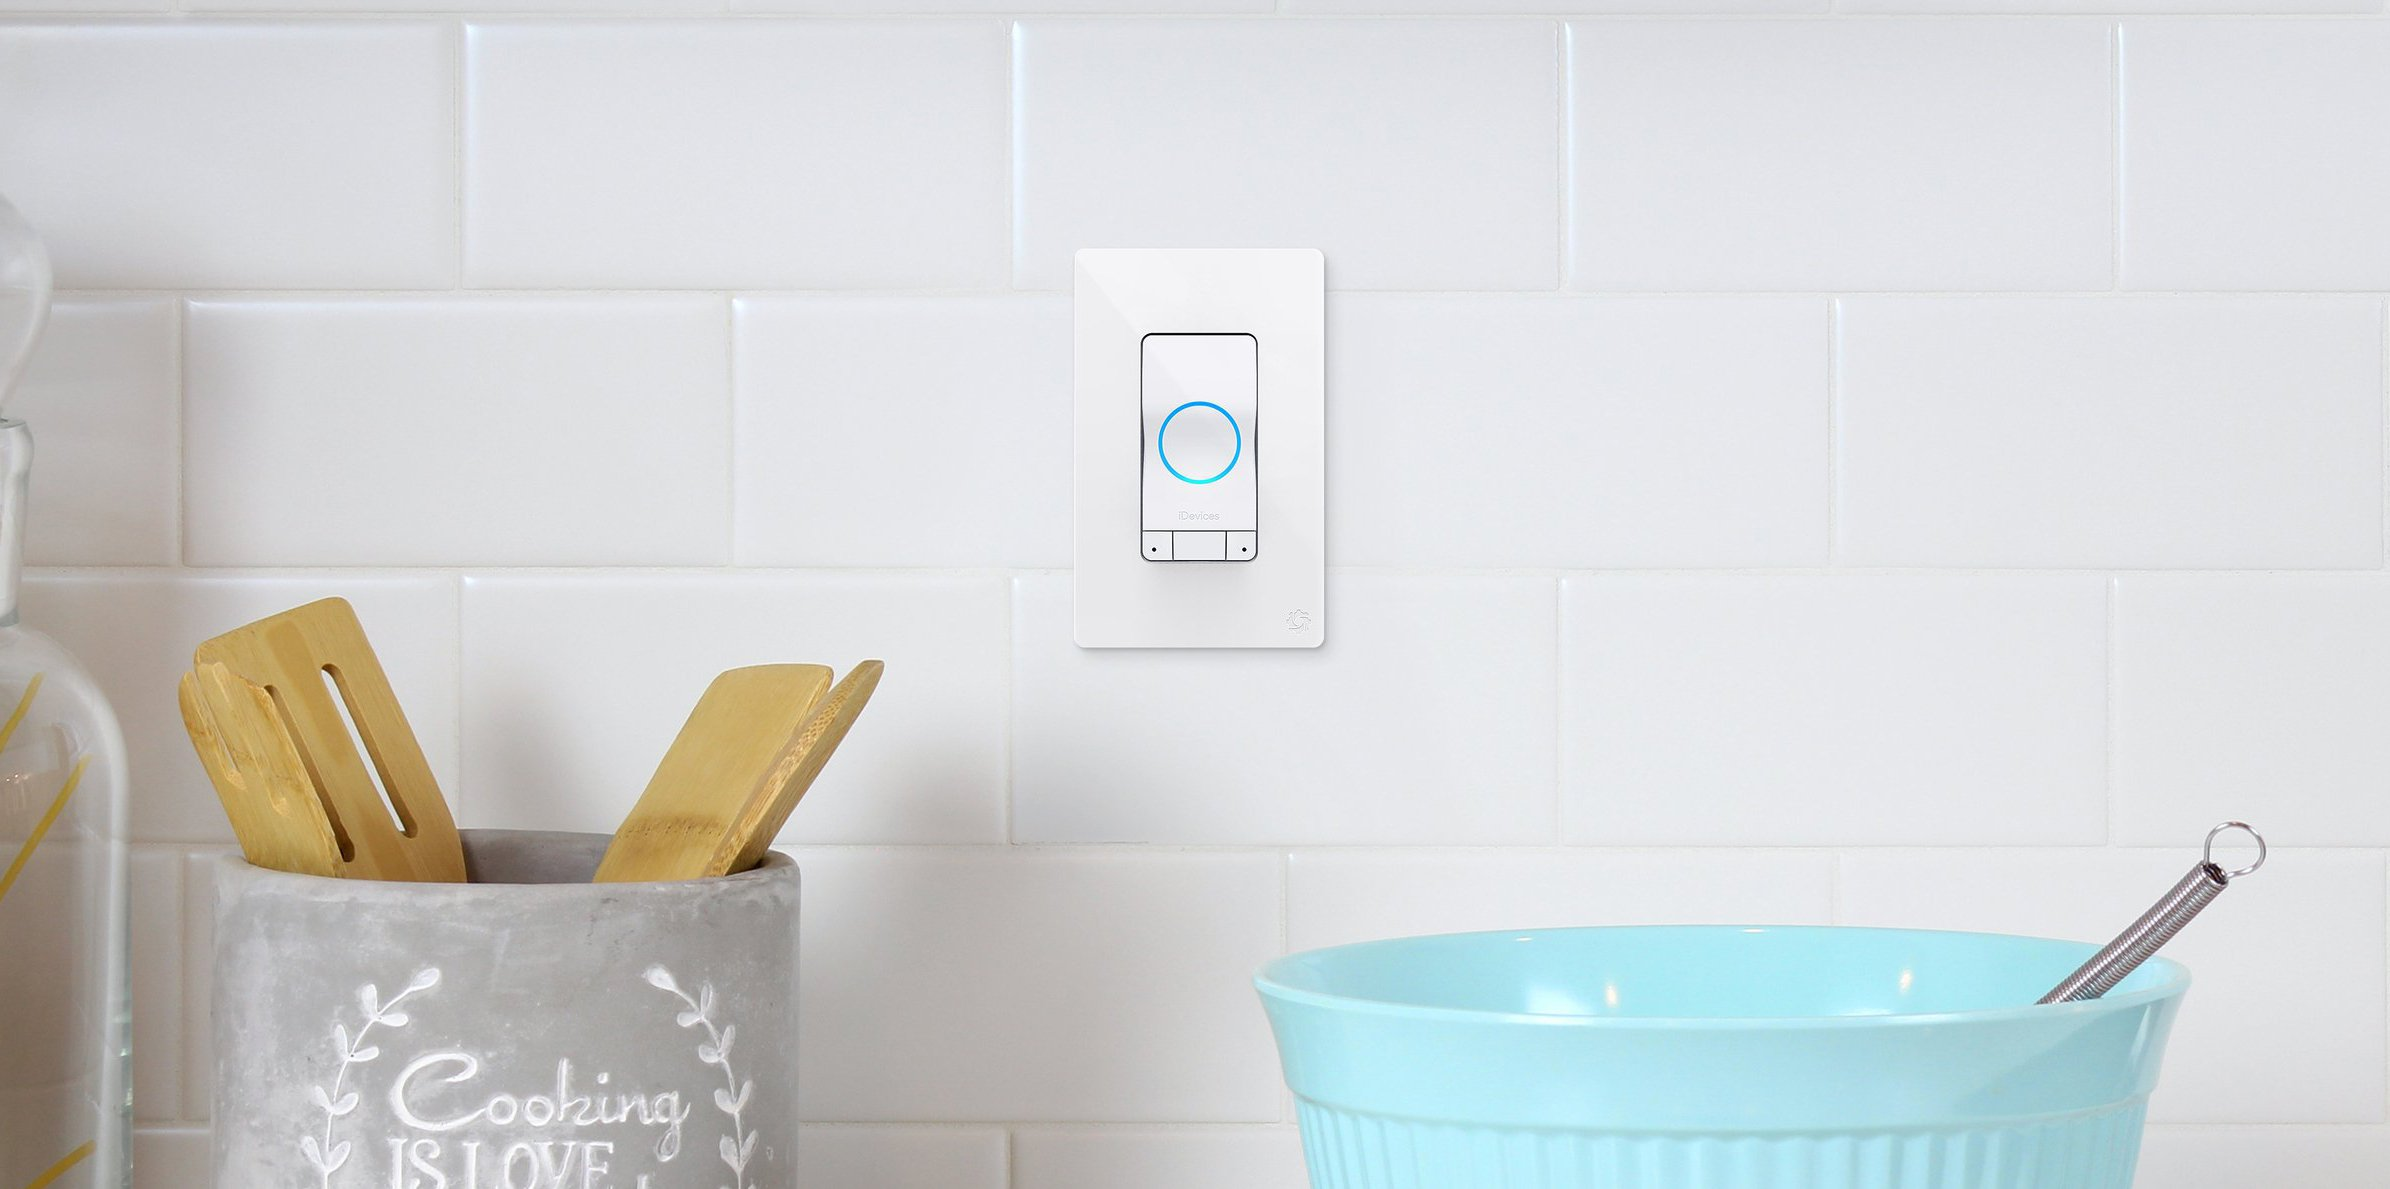 iDevices News, iDevices® Announces the Availability of Instinct™, the Smart Light Switch with Alexa Built-in